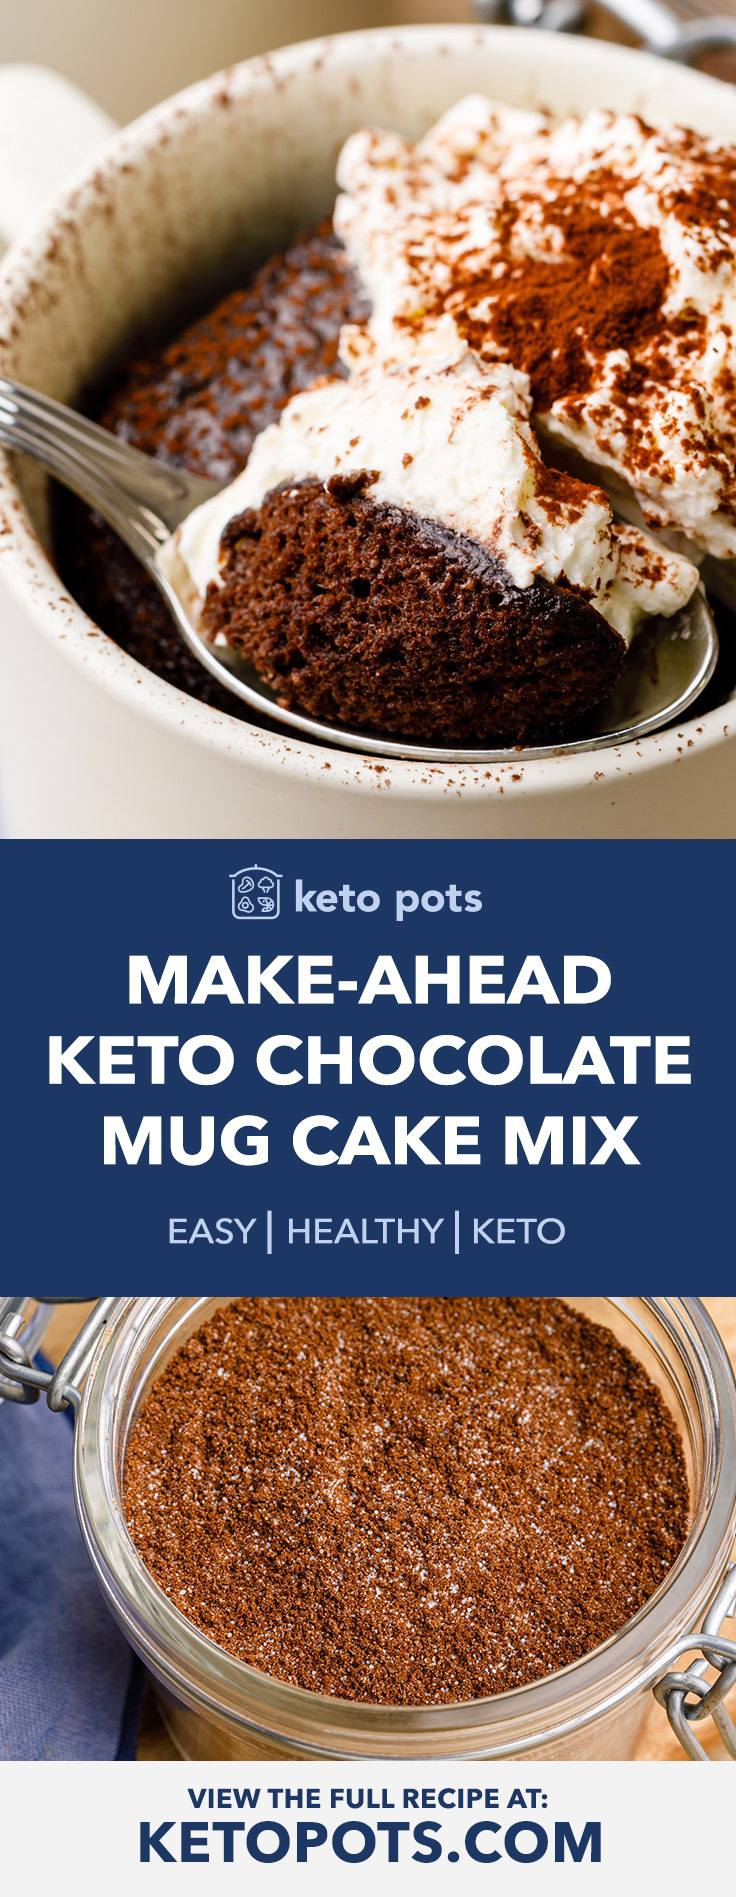 Make Ahead Keto Chocolate Mug Cake Mix For An Easy Quick Dessert Keto Pots